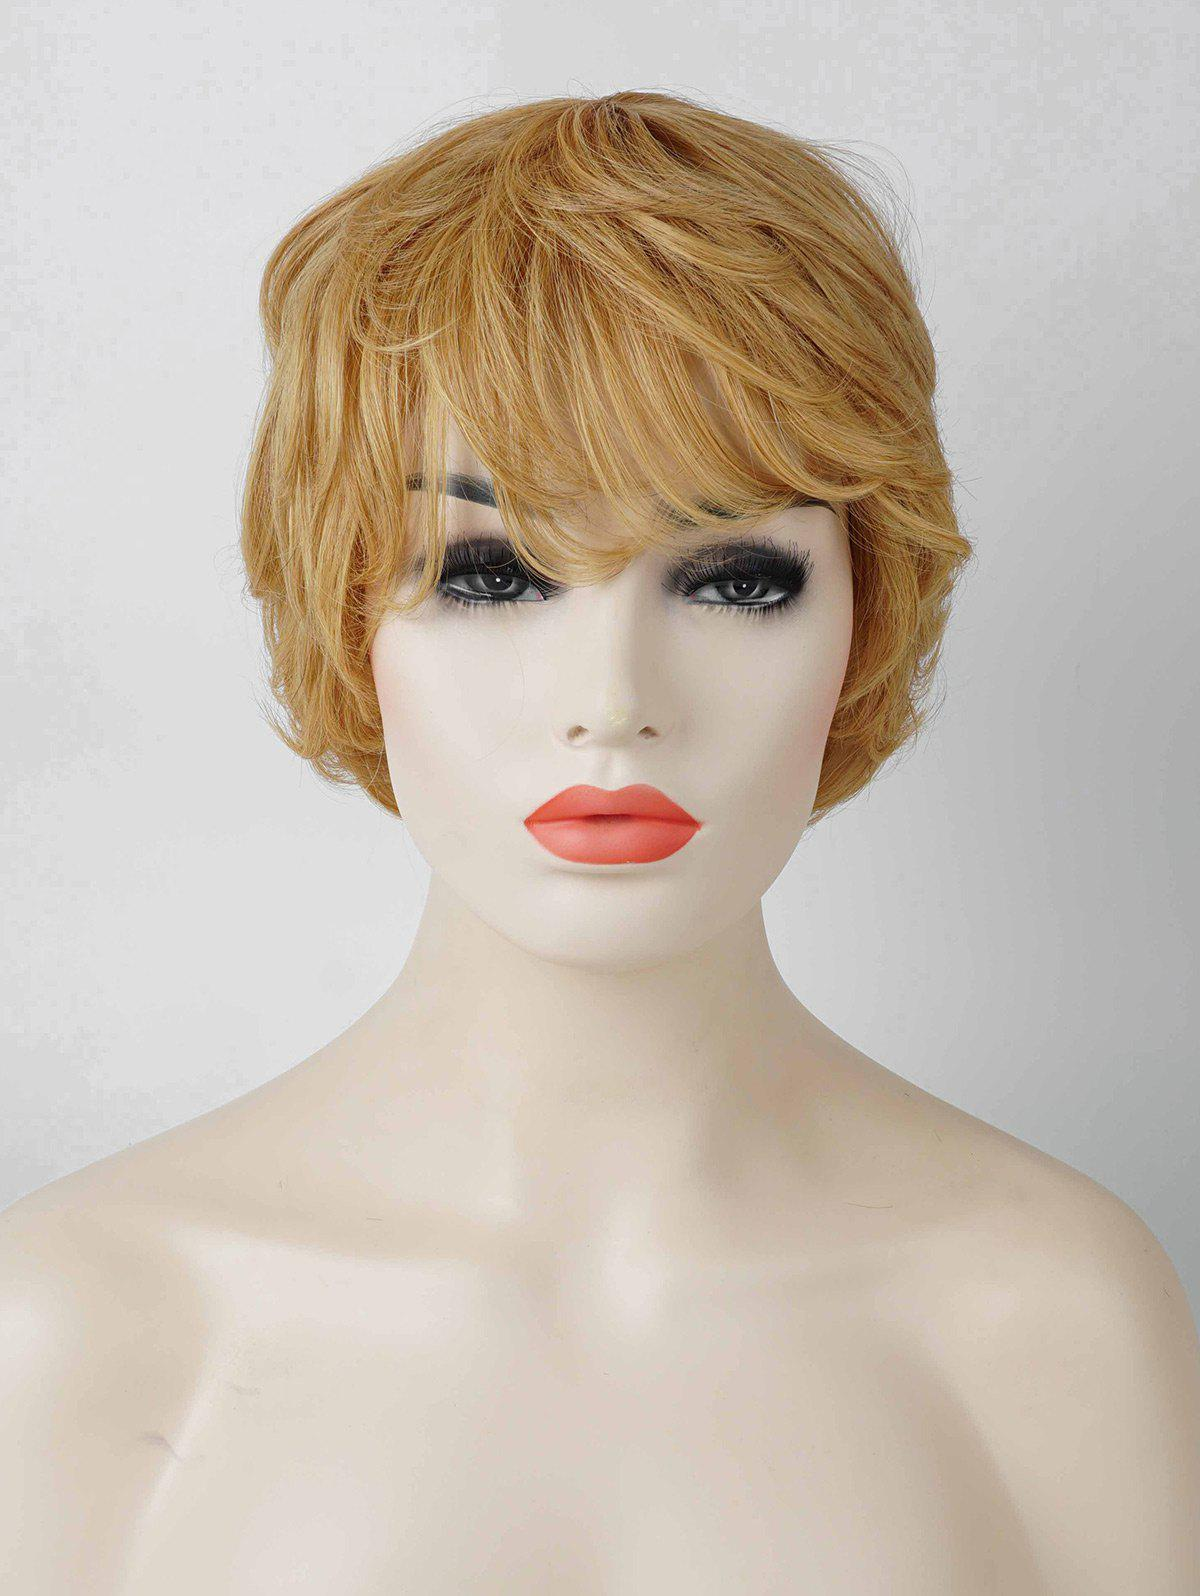 Inclined Bang Layered Short Slightly Curly Human Hair Wig - LIGHT BLOND